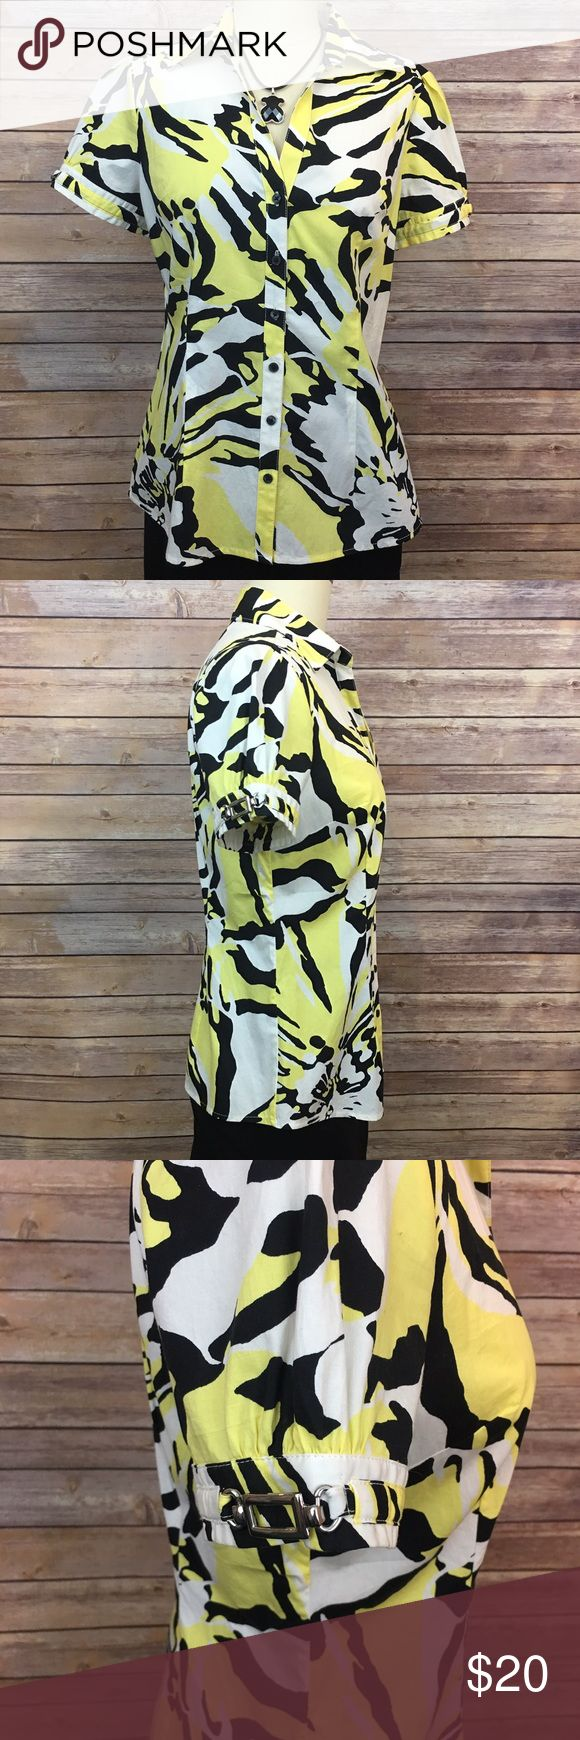 """Express Yellow, Black and White Short Sleeve Shirt Express Yellow, Black and White Short Sleeve Shirt. 97% cotton/ 3% spandex. Pit to pit 18""""/ length 24"""" Express Tops Button Down Shirts"""